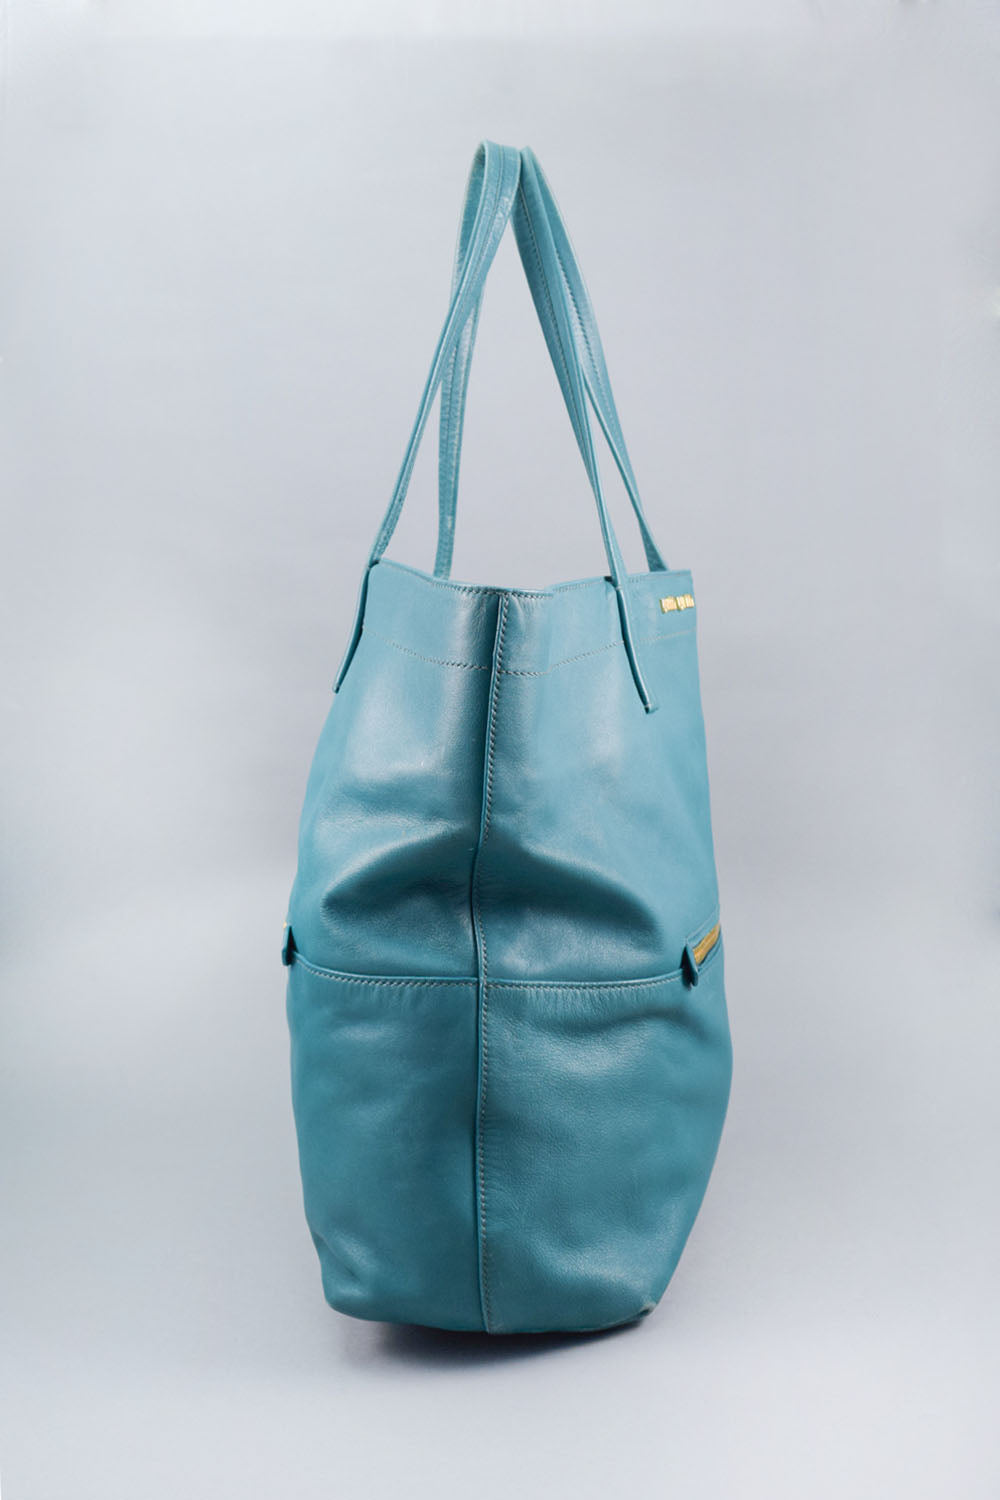 Miu Miu Dark Turquoise Leather Shopper Tote